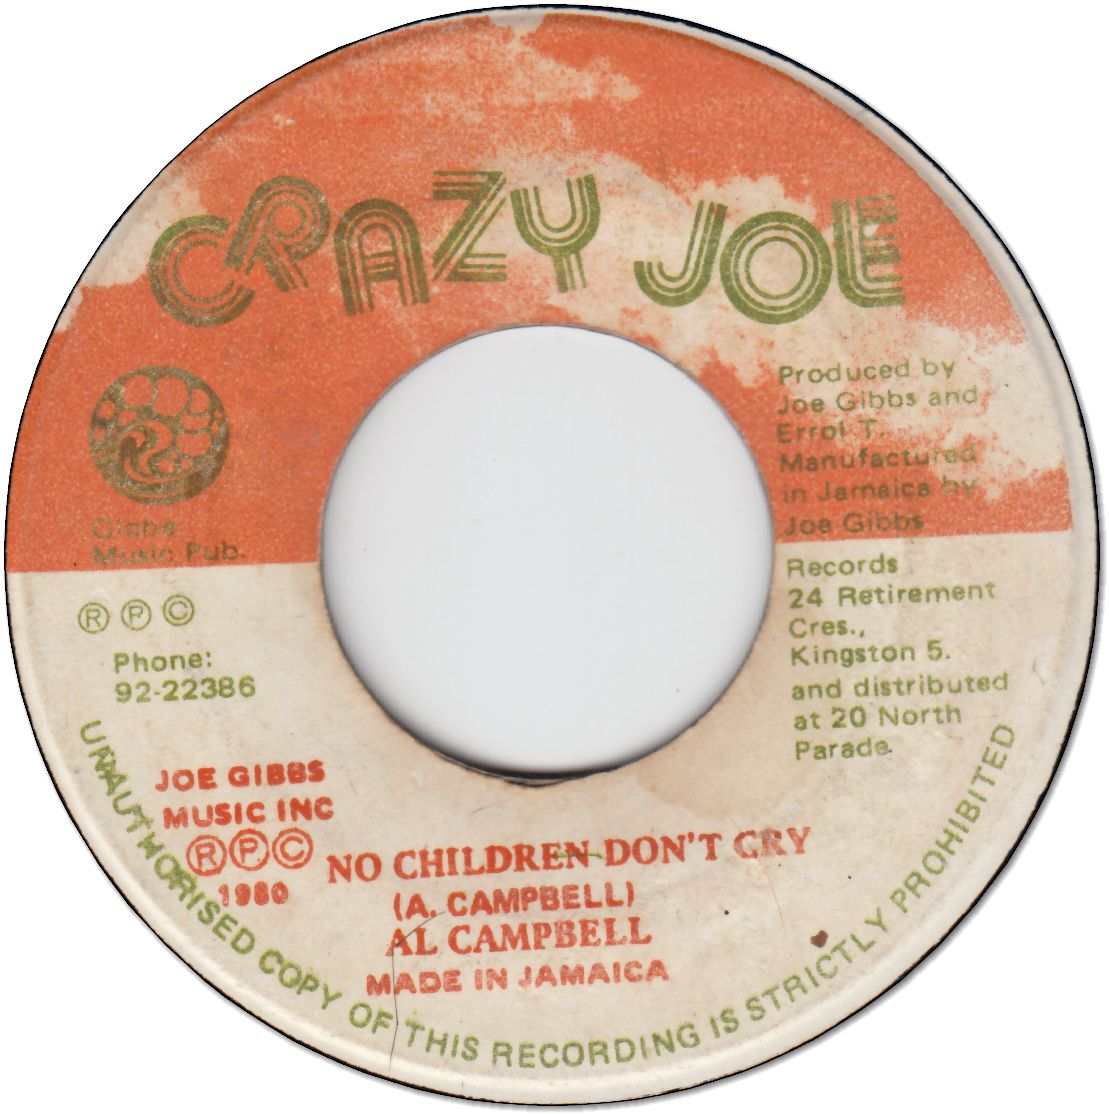 NO CHILDREN DON'T CRY (VG+) / DON'T CRY (VG)